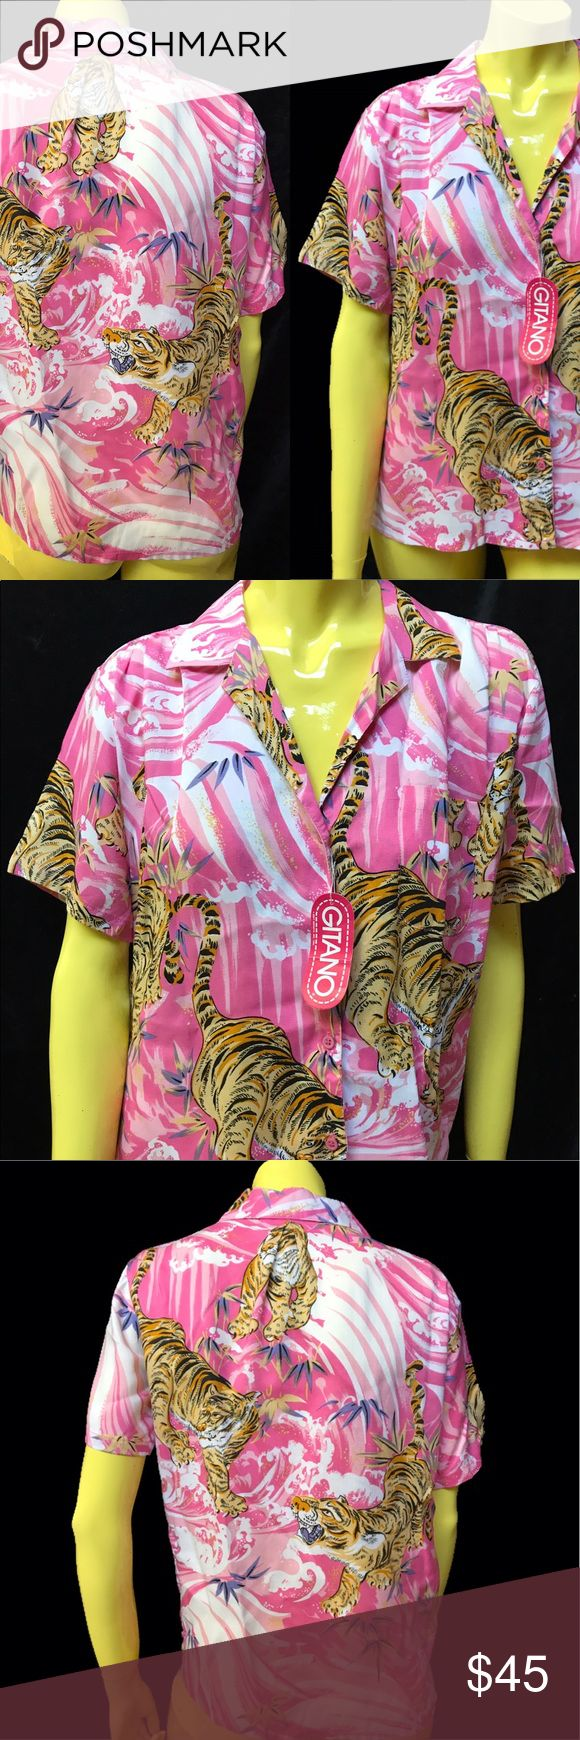 "• VTG 80s Pink Tsunami & Tiger Shirt • Praise the Gauds ✨ This is deadstock disco, this is tropical  this is a fruit punch & feline fantasy ✨.  . • Gitano • % Rayon • Made in Thailand  • L (definitely more of a medium fit).  . • Length: 23"" • • Bust: 42"" • • Shoulder: 21"" •  . . • * • . • ✶ • . • * • . #vintage #vtg #retro #1980 #1980s #80 #80s #tiger #tiki #tsunami #pink #sea #surf #camp #campy #disco #tropical #jungle #cat #summer #surreal #novelty #print #top #thrift #shop #realbazaar…"